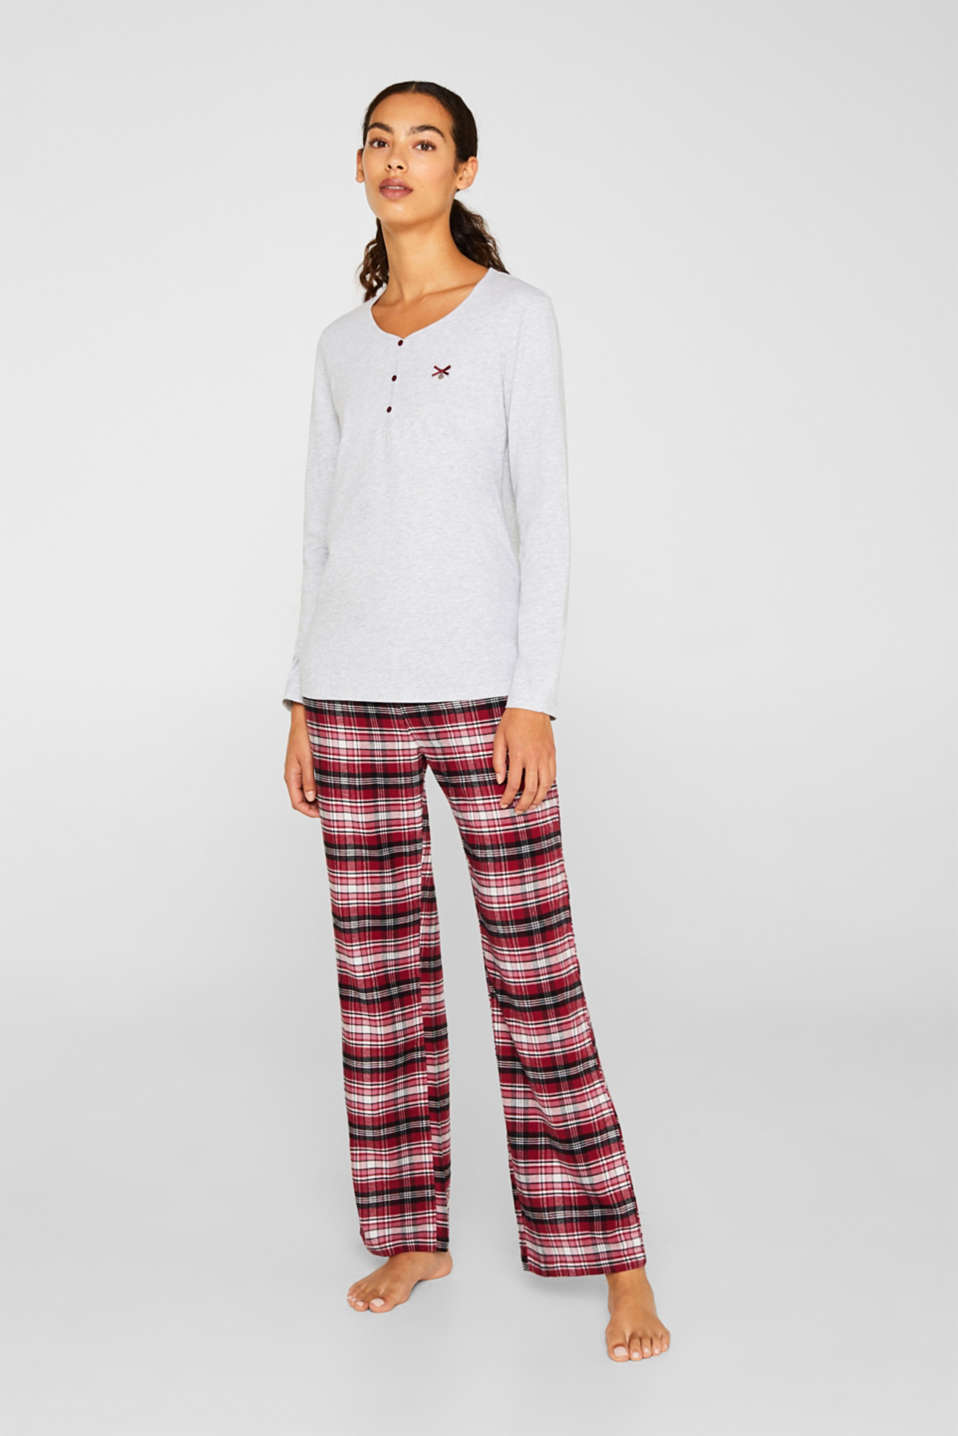 Esprit - Jersey/flannel pyjamas, 100% cotton